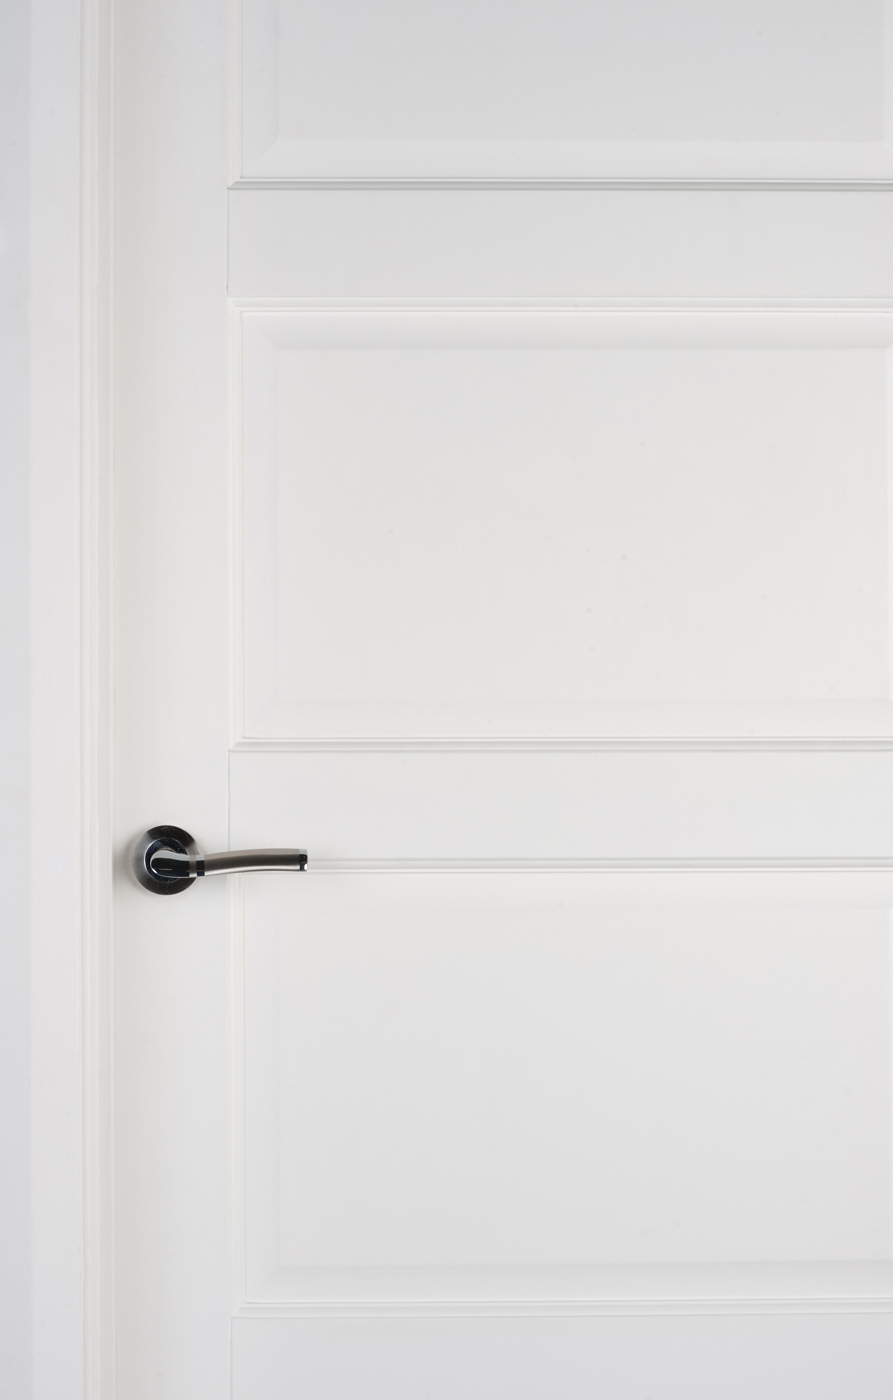 Contemporary 4 Panel White Primed Door (40mm) | Internal ...